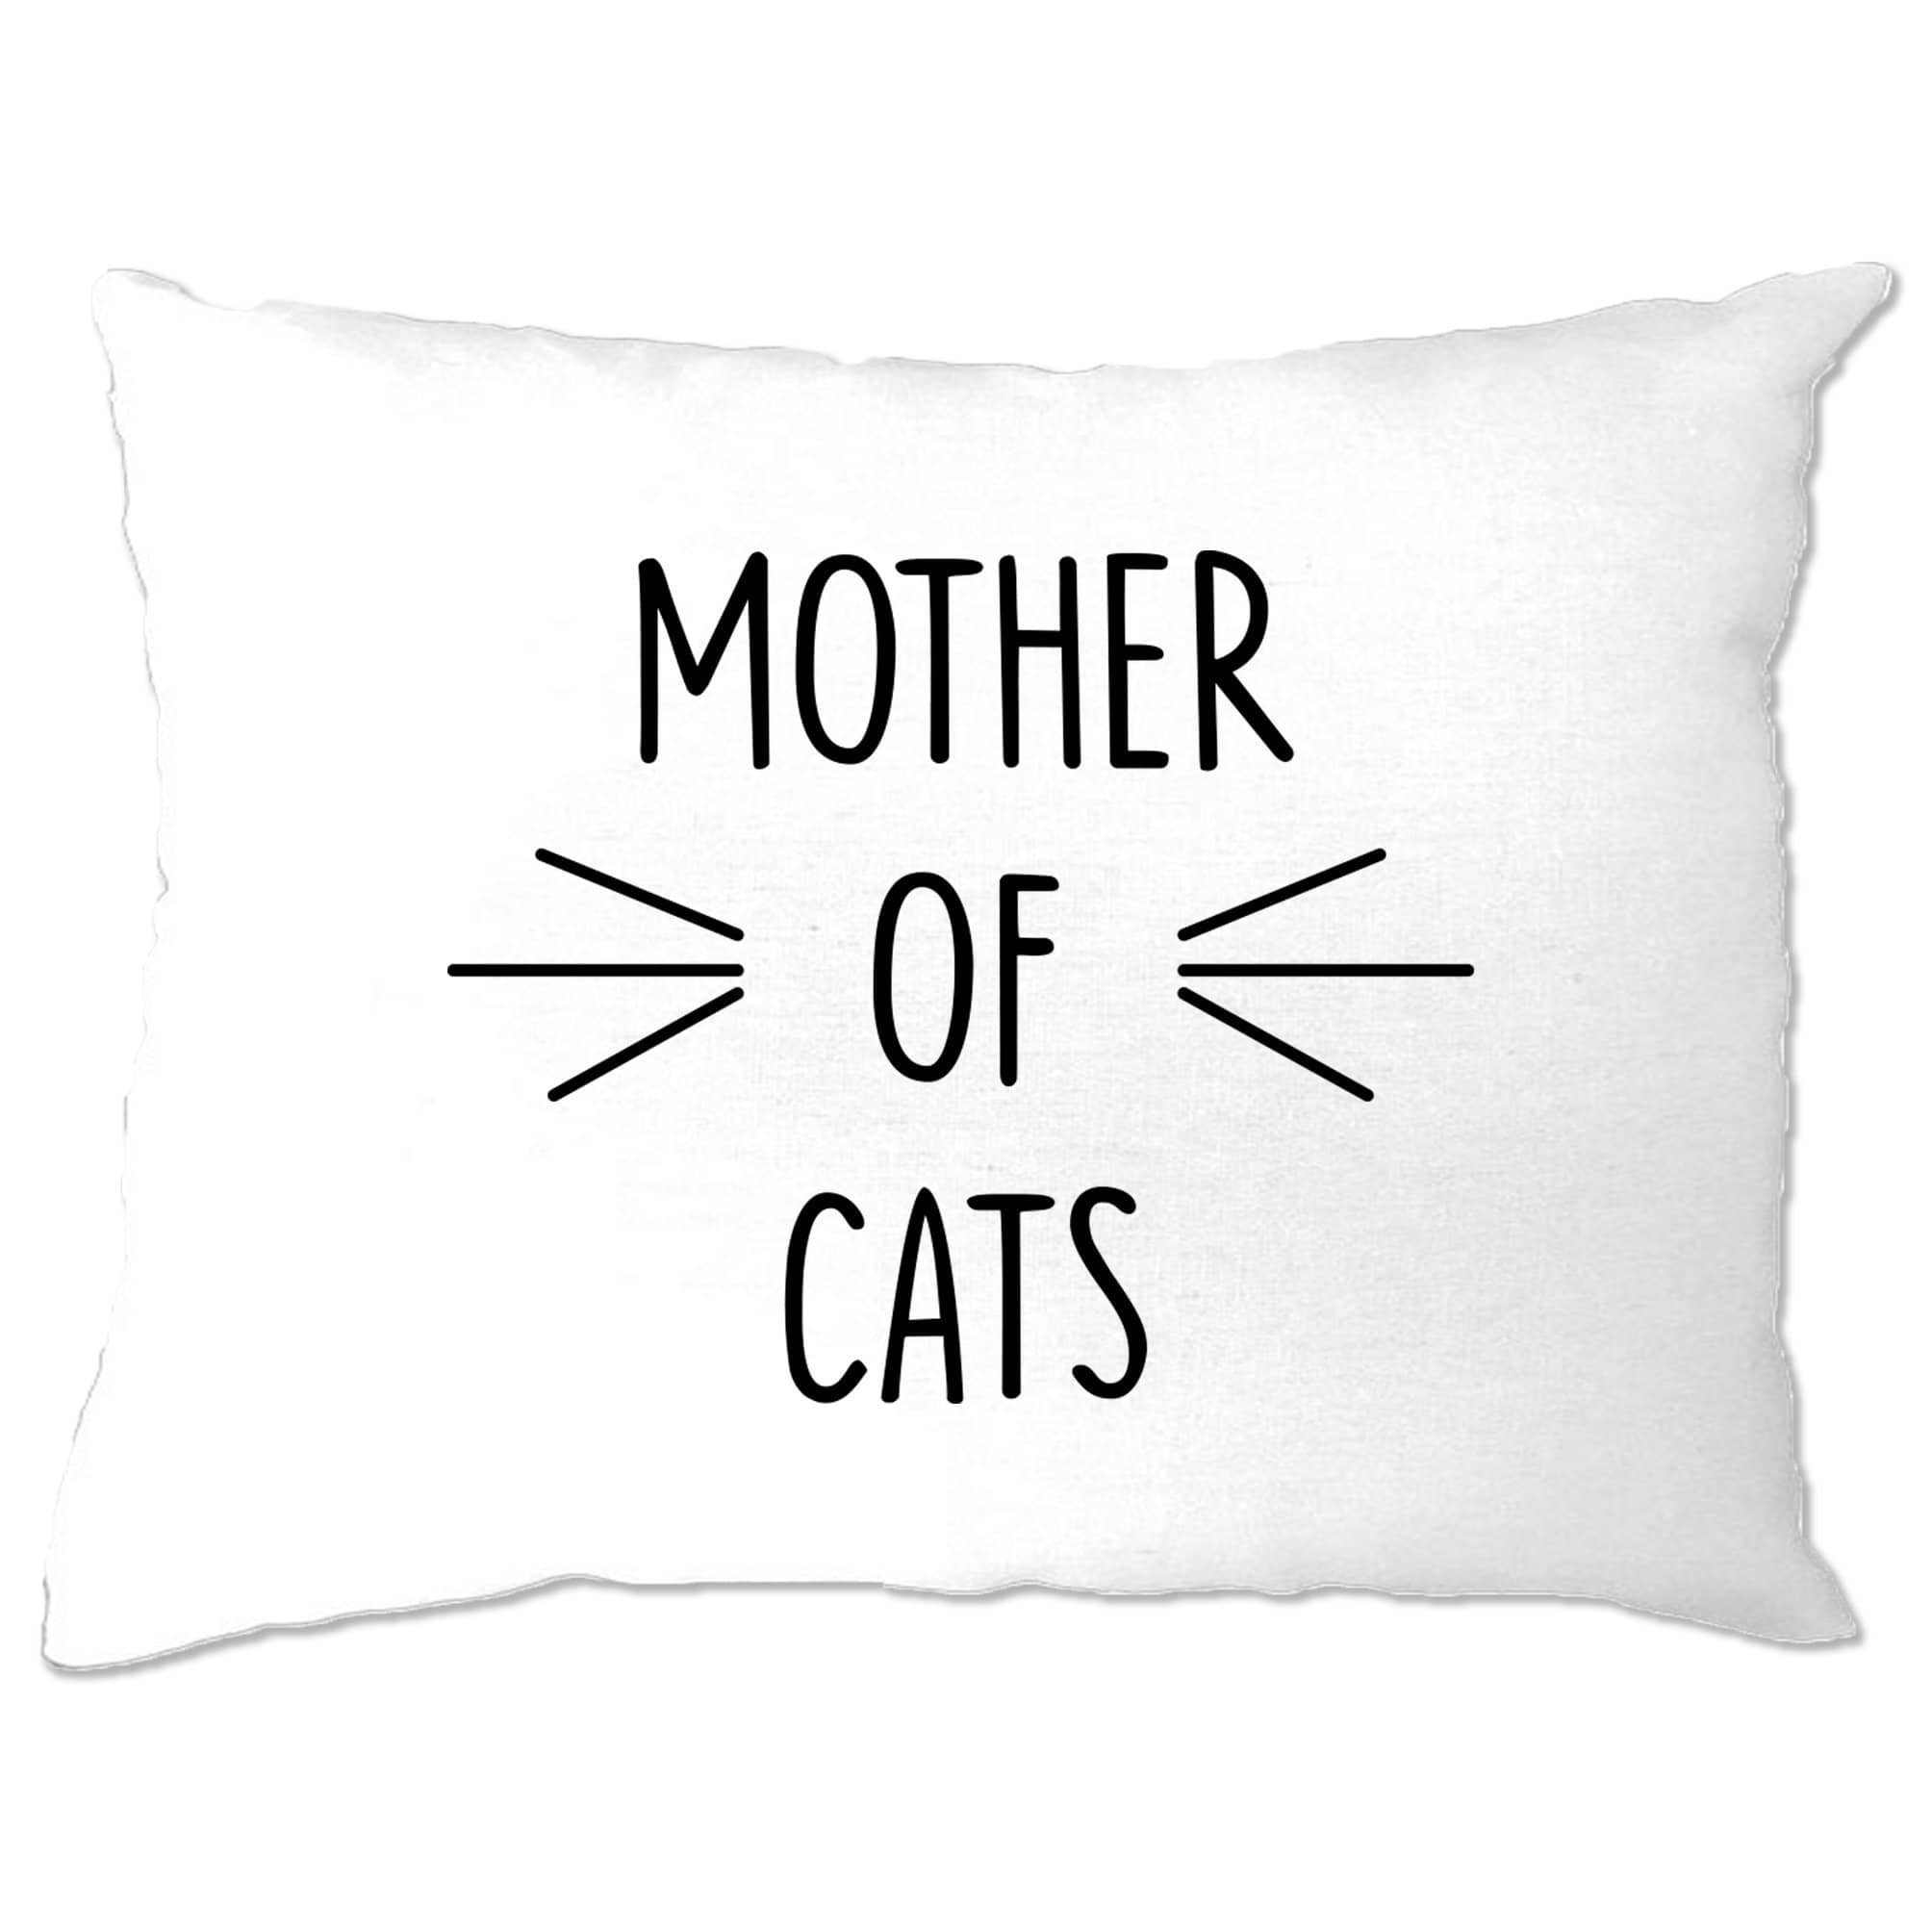 Novelty Pet Pillow Case Mother Of Cats Slogan